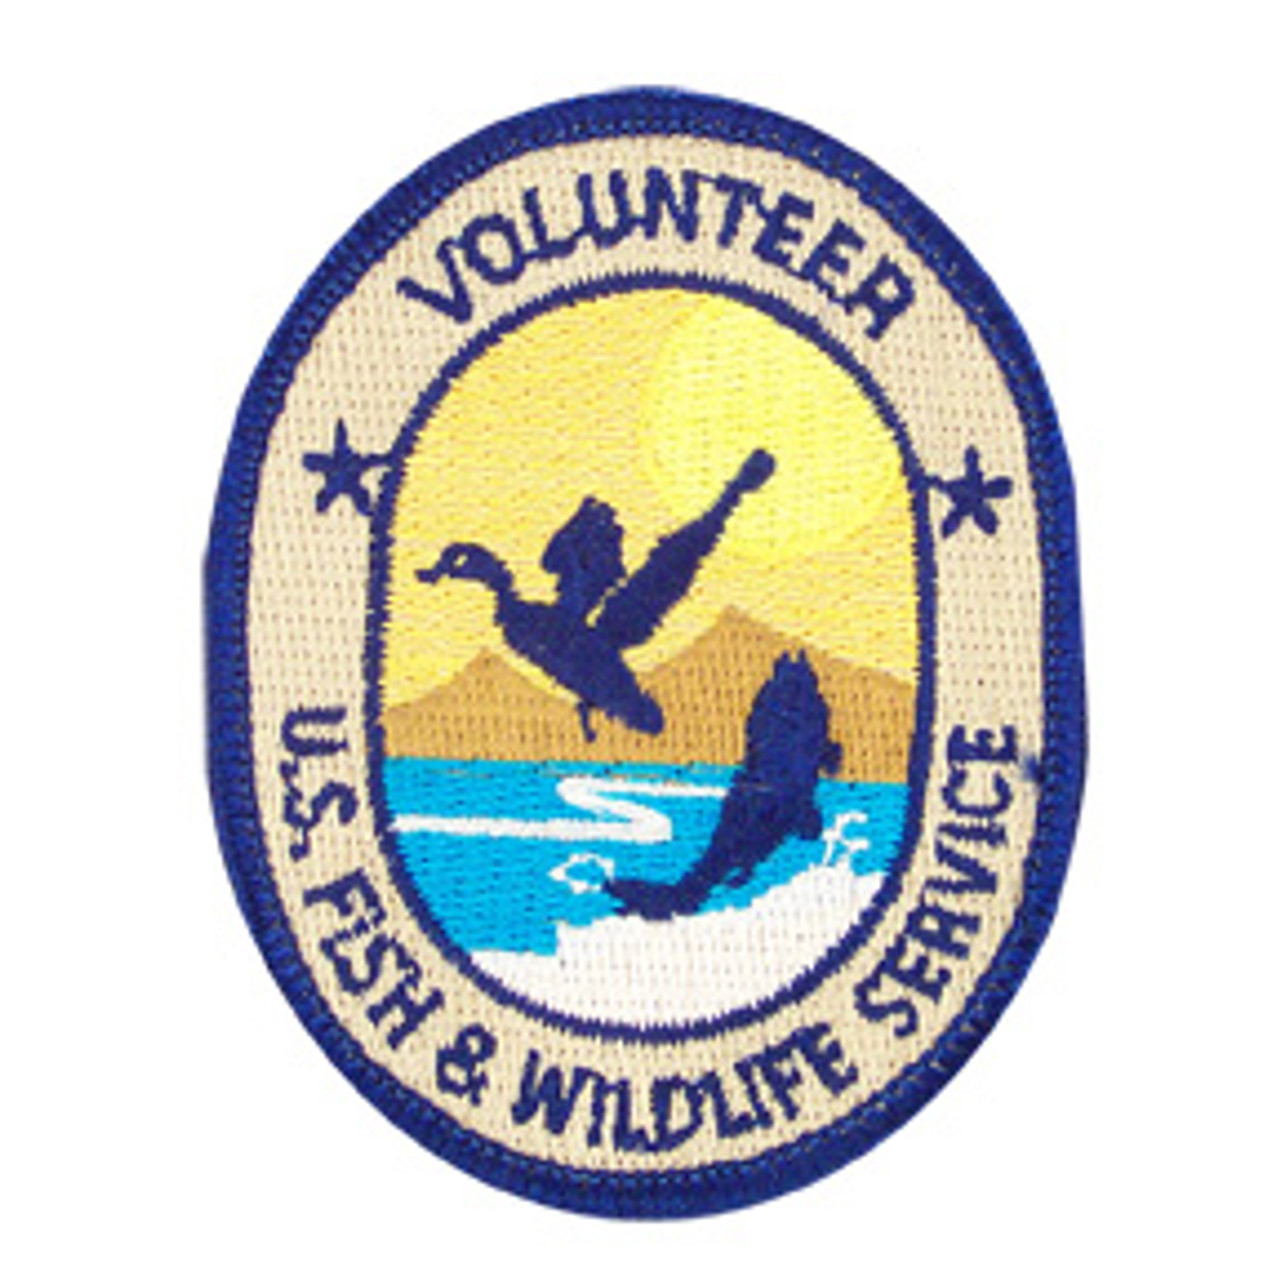 Fish & Wildlife Service Volunteer Patch - Small